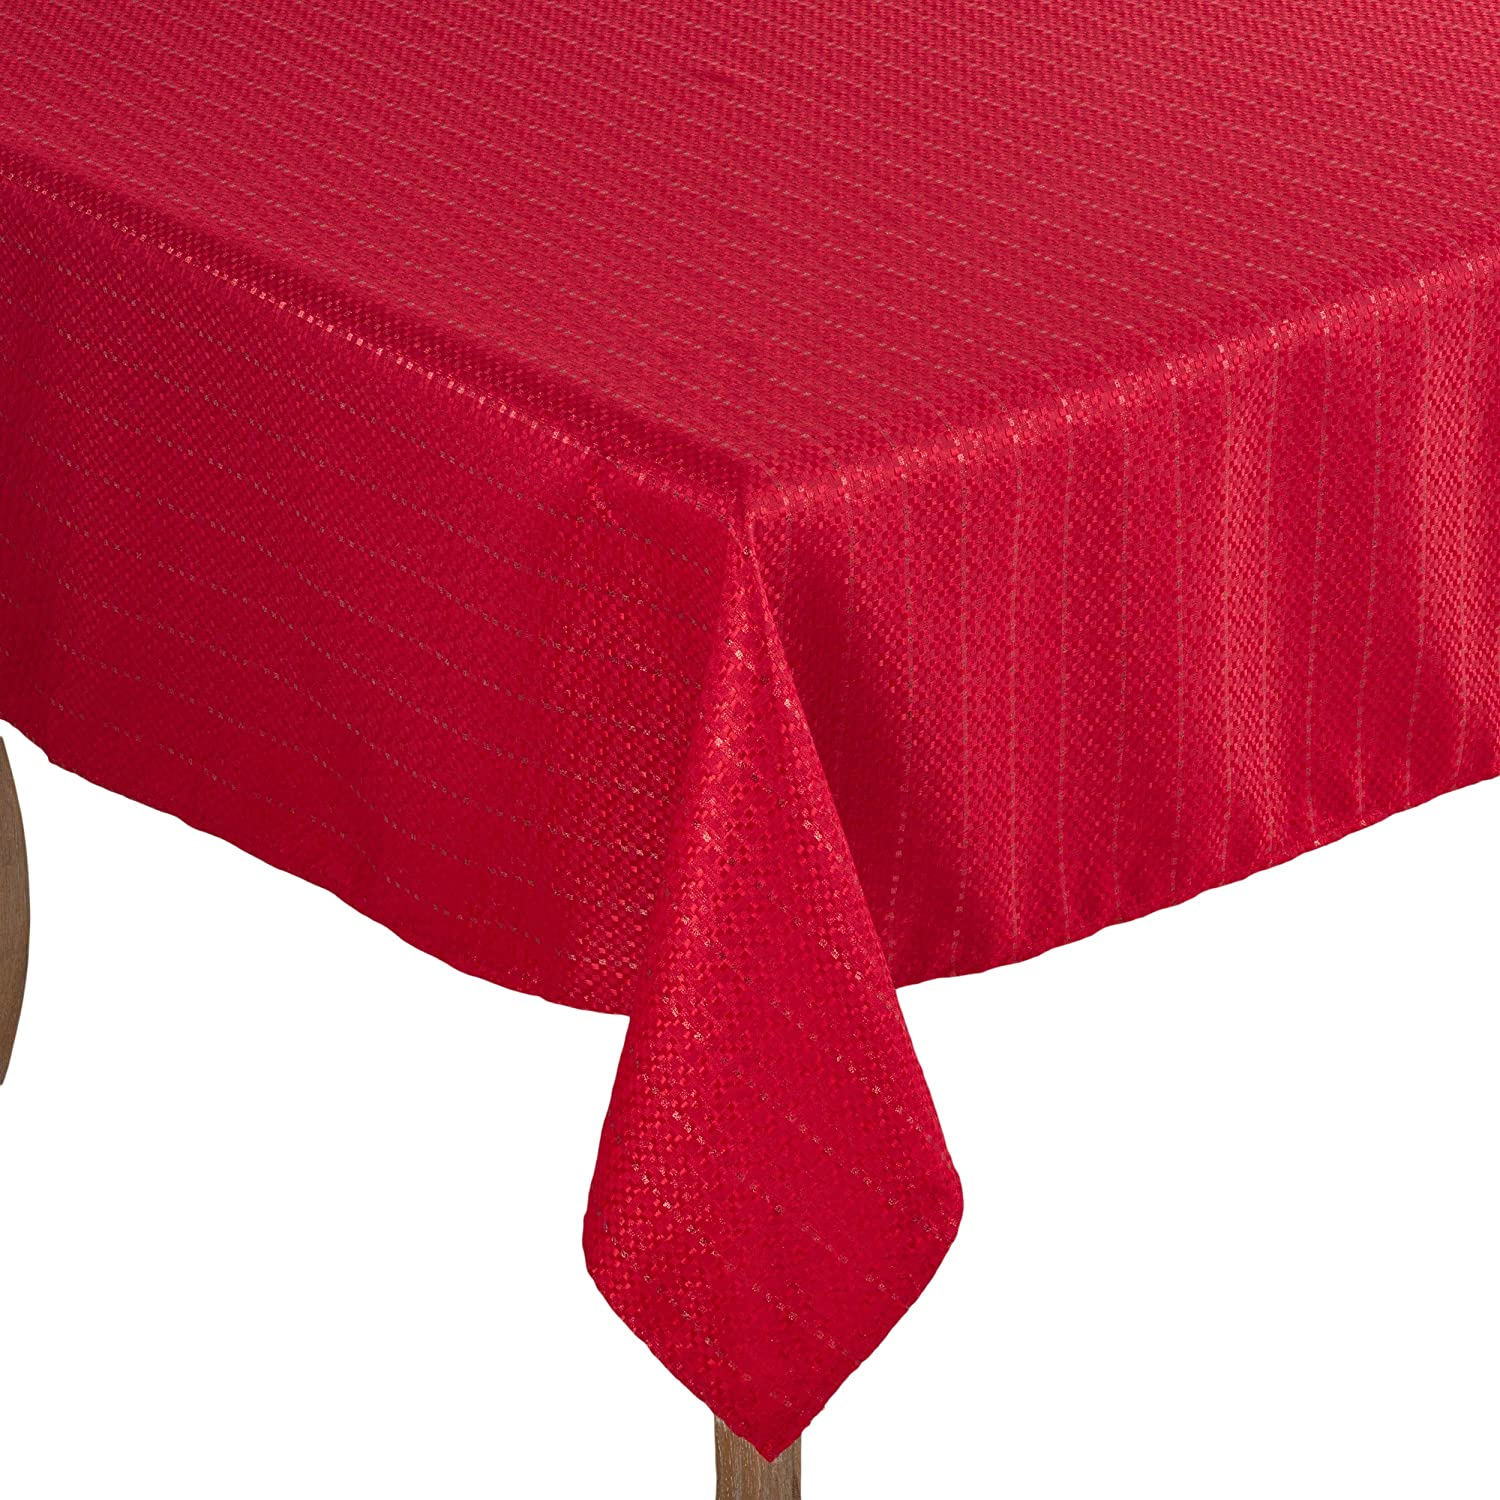 SARO LIFESTYLE 8574.R70S Gloria Design Stitched OFFicial Collection Table Beauty products